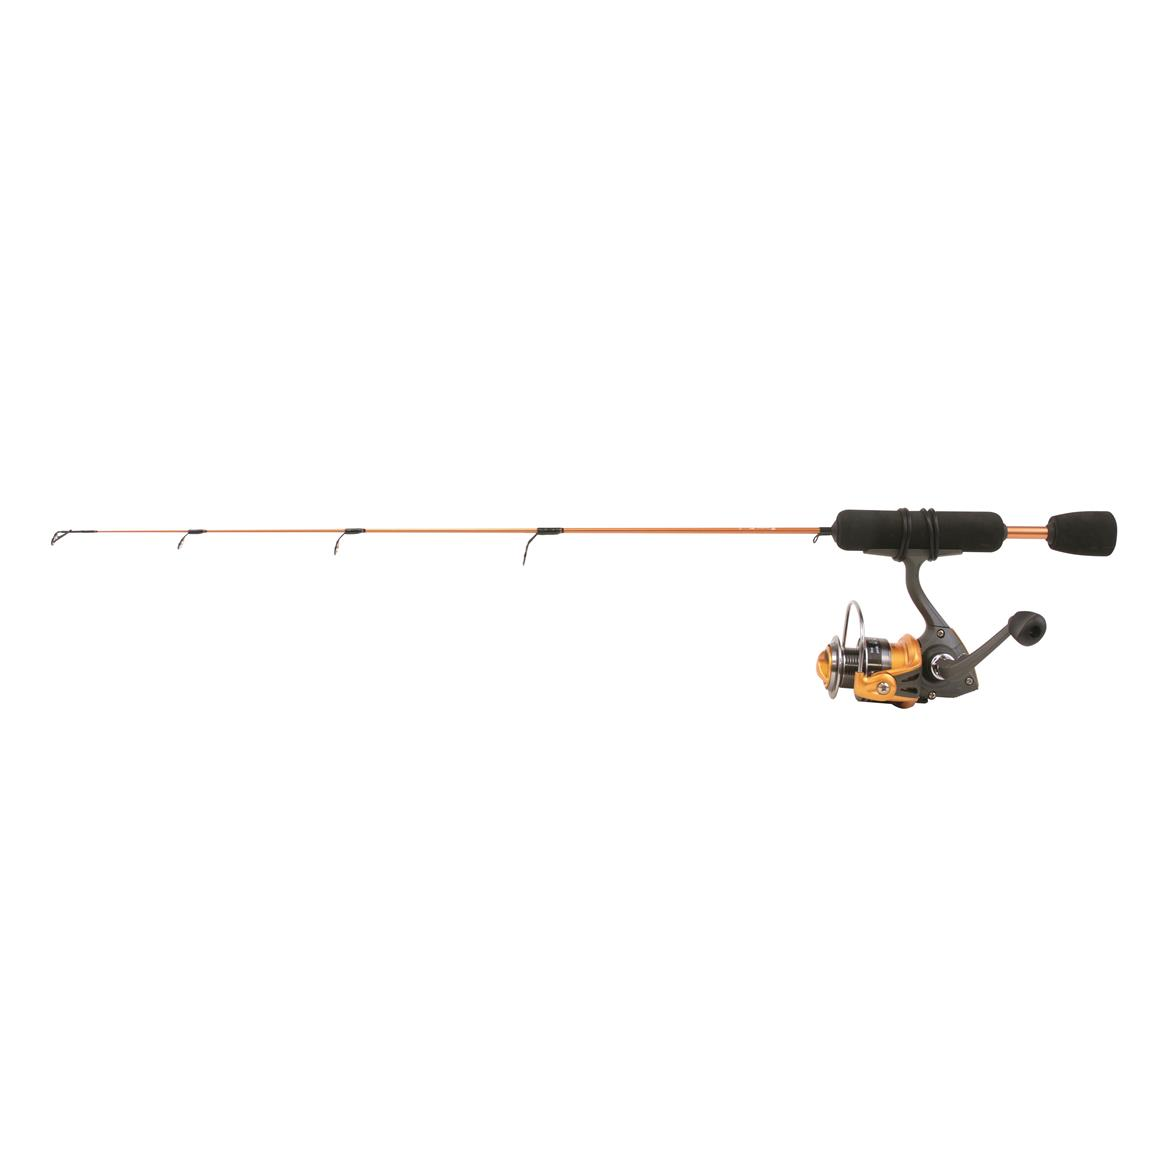 Clam power 26 stick series ice fishing rod and reel combo for Fishing rod reel combo